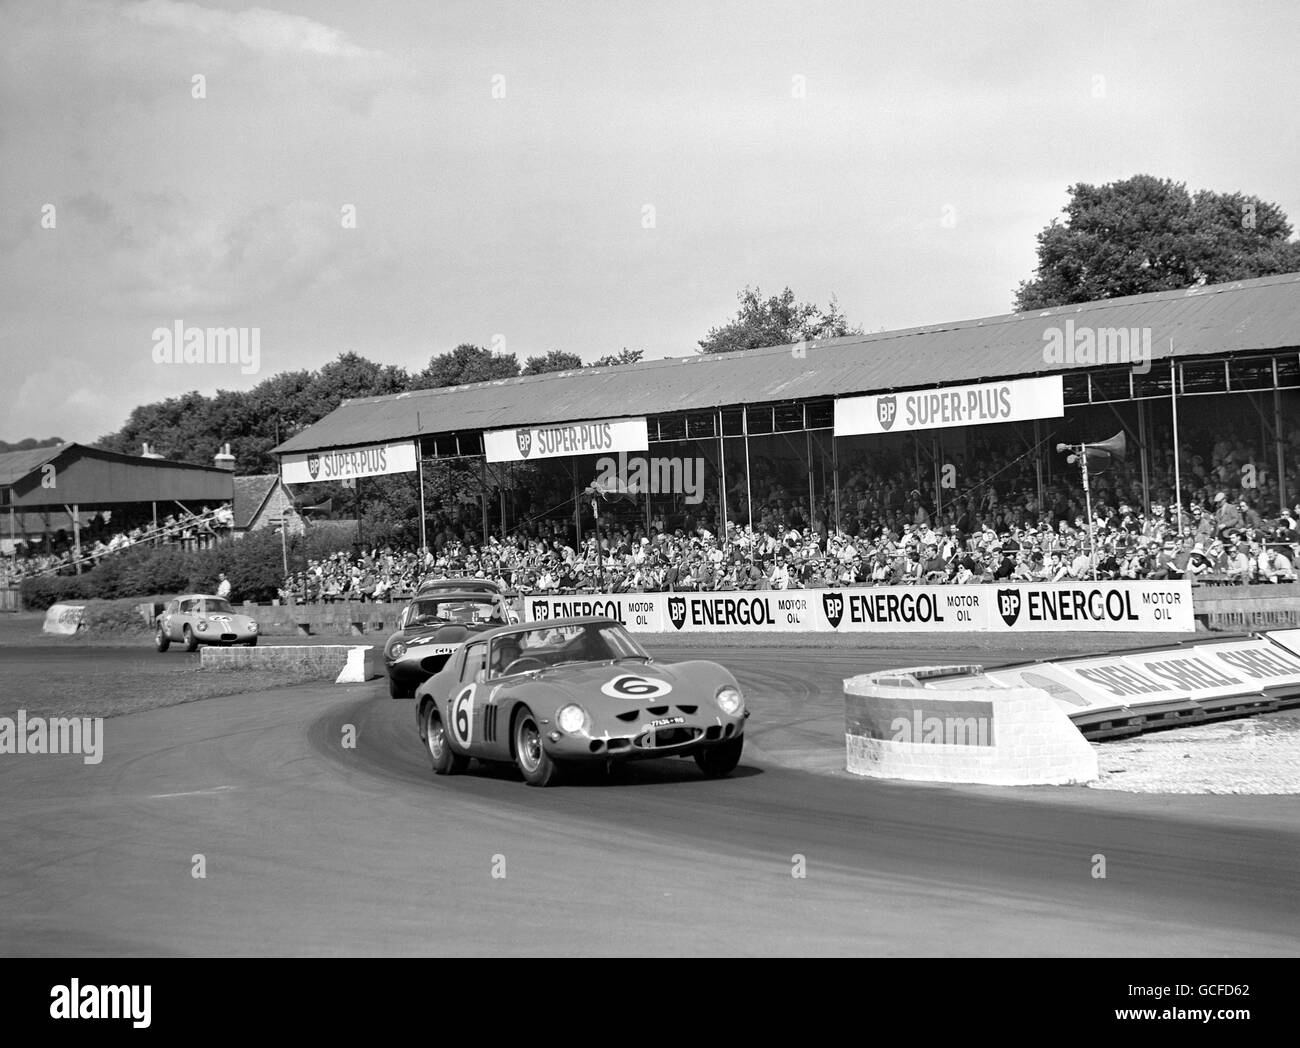 Rennsport - 27. RAC Tourist Trophy Rennen - Goodwood Stockbild